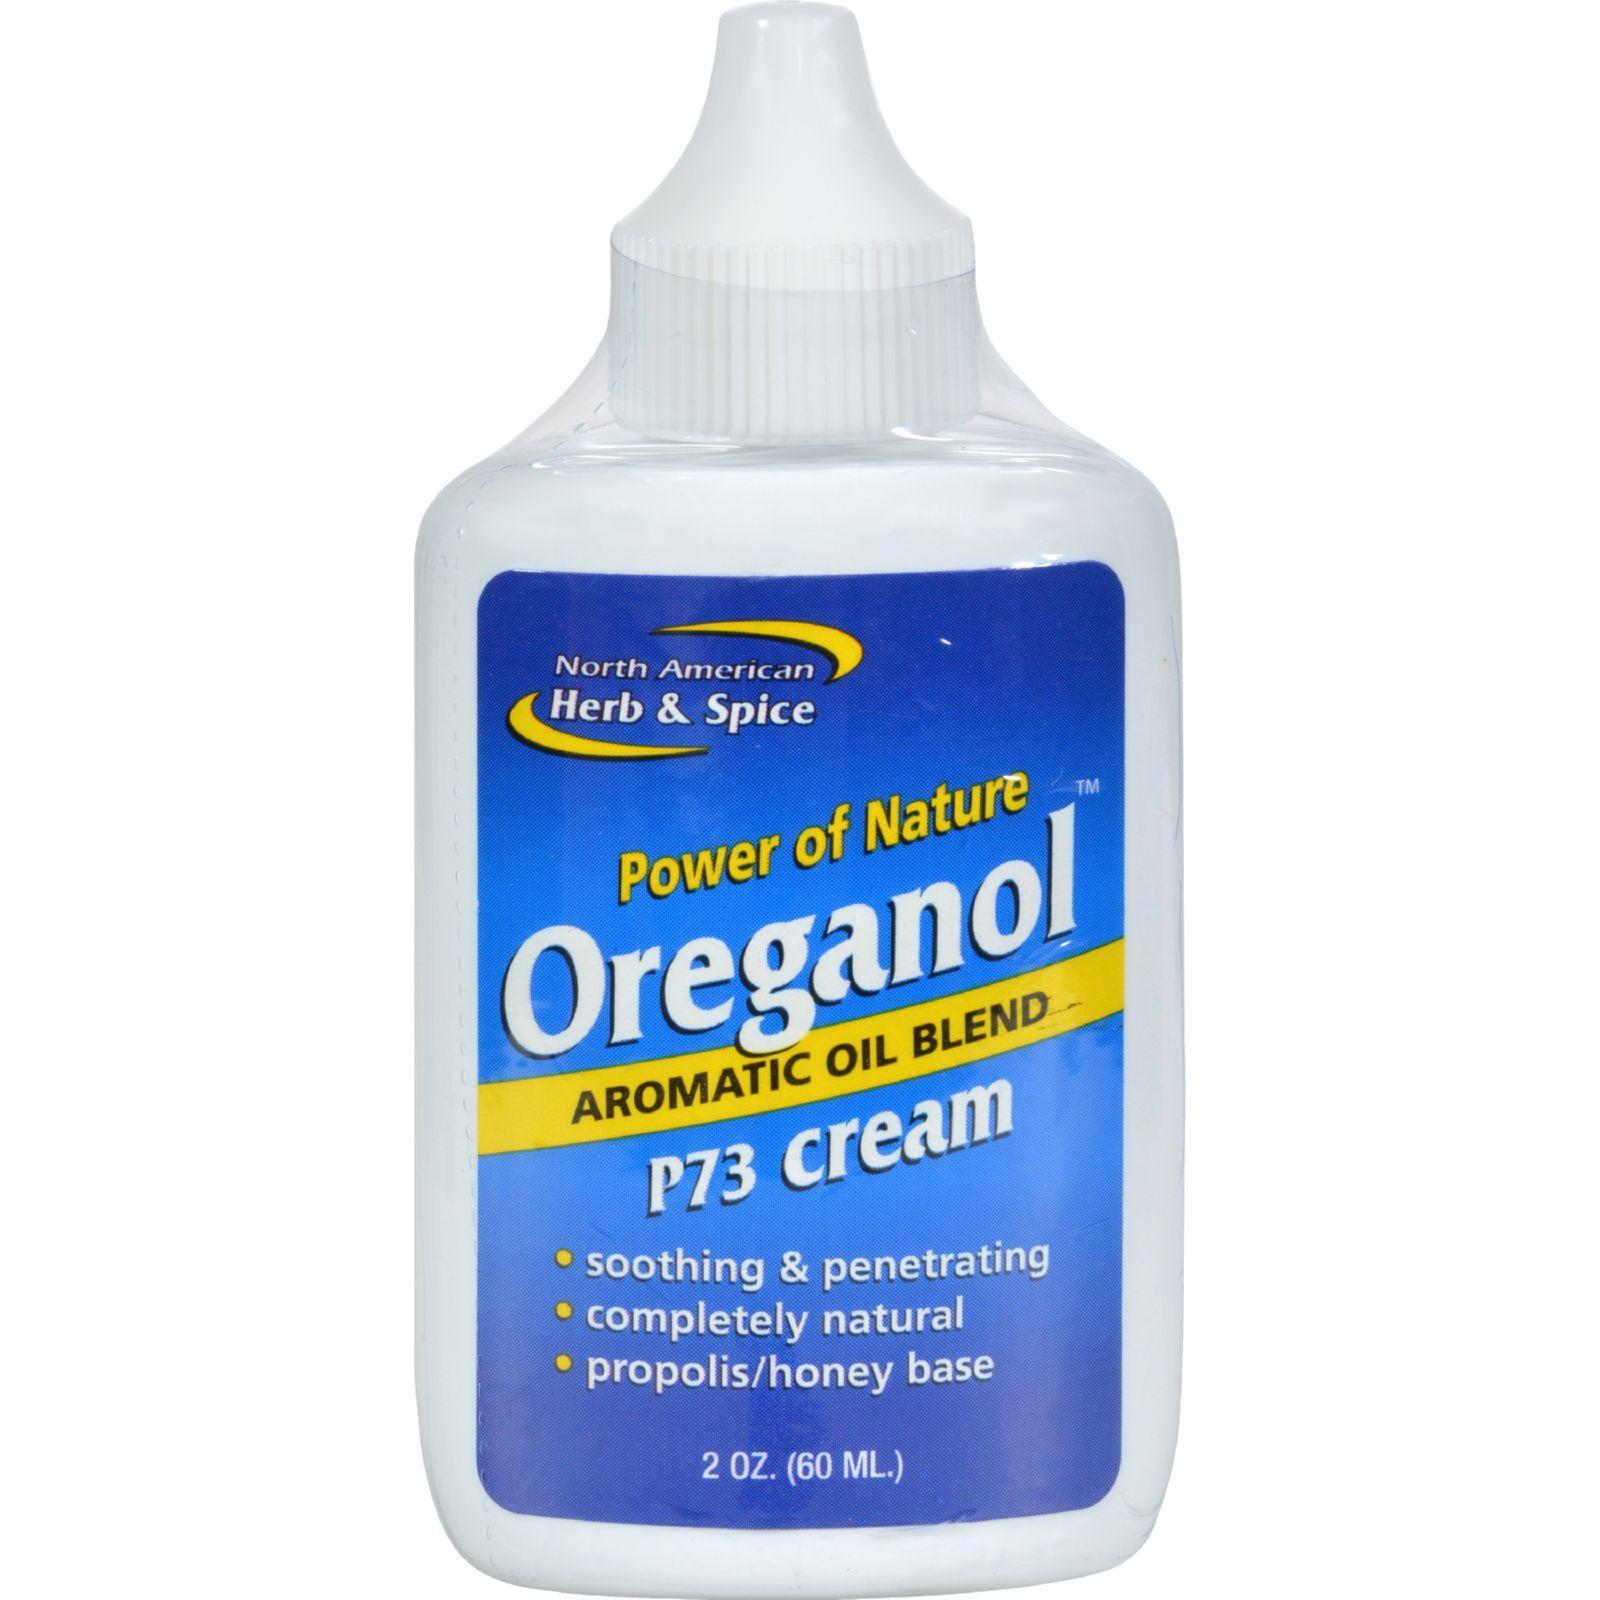 North American Herb And Spice Oreganol Oil Of Oregano Cream 2 Oz Oregano Oil Benefits Oregano Oil Homemade Moisturizer